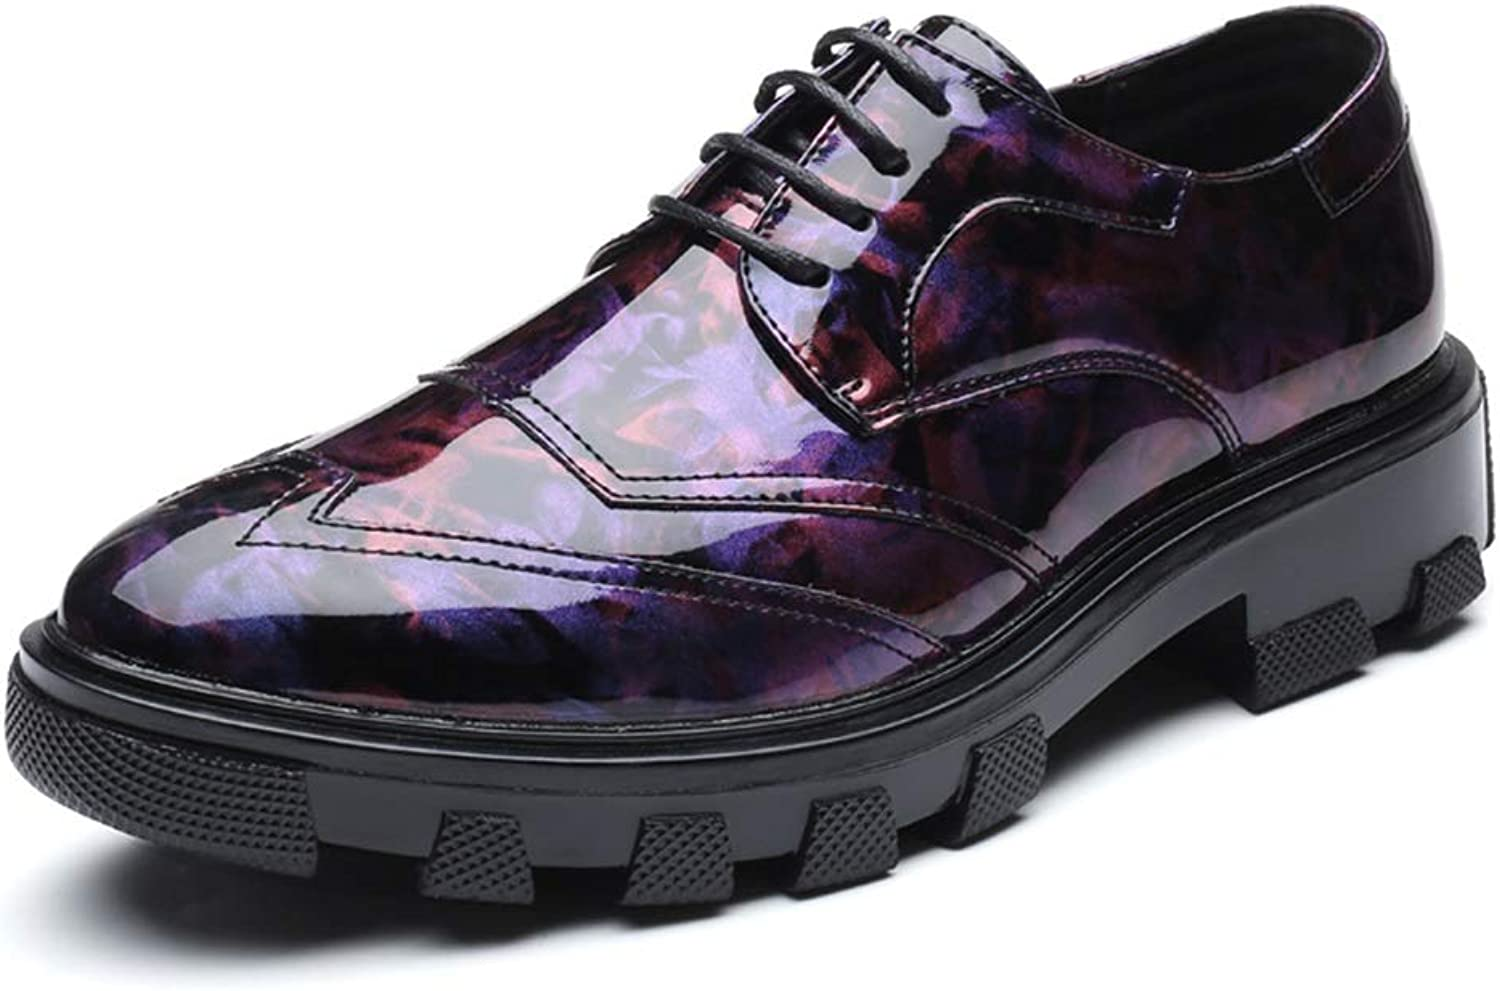 XHD-Men's shoes Fashion Comfortable Thick British Style Patent Leather Retro Brogue shoes Men's Business Oxford Casual shoes